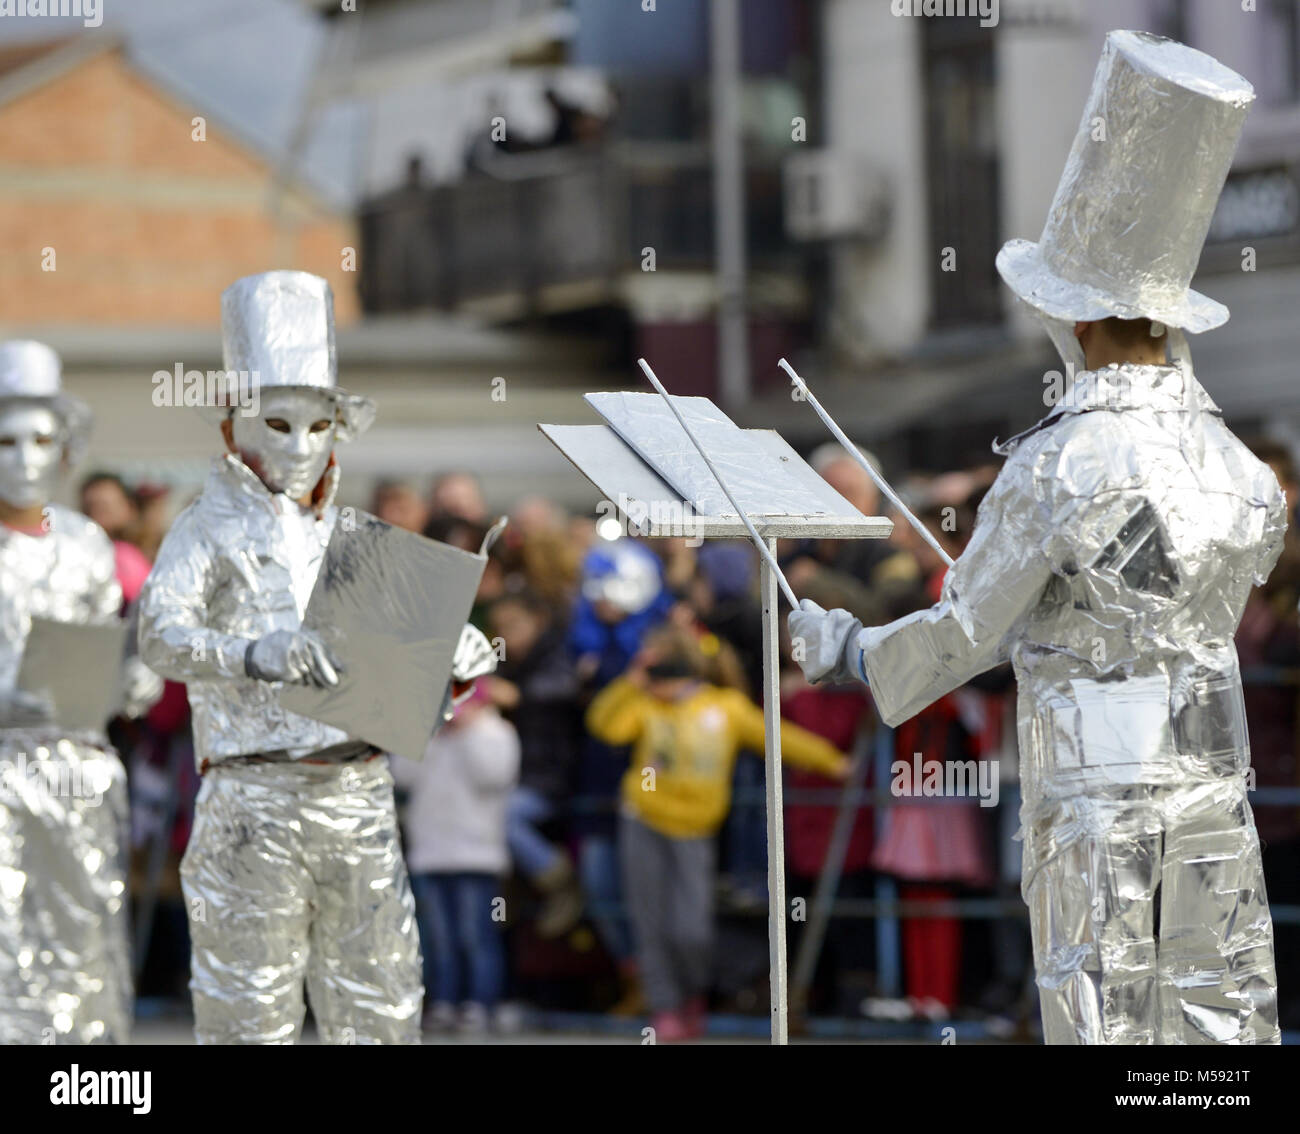 Tin Foil Conductor : Masquerade book stock photos